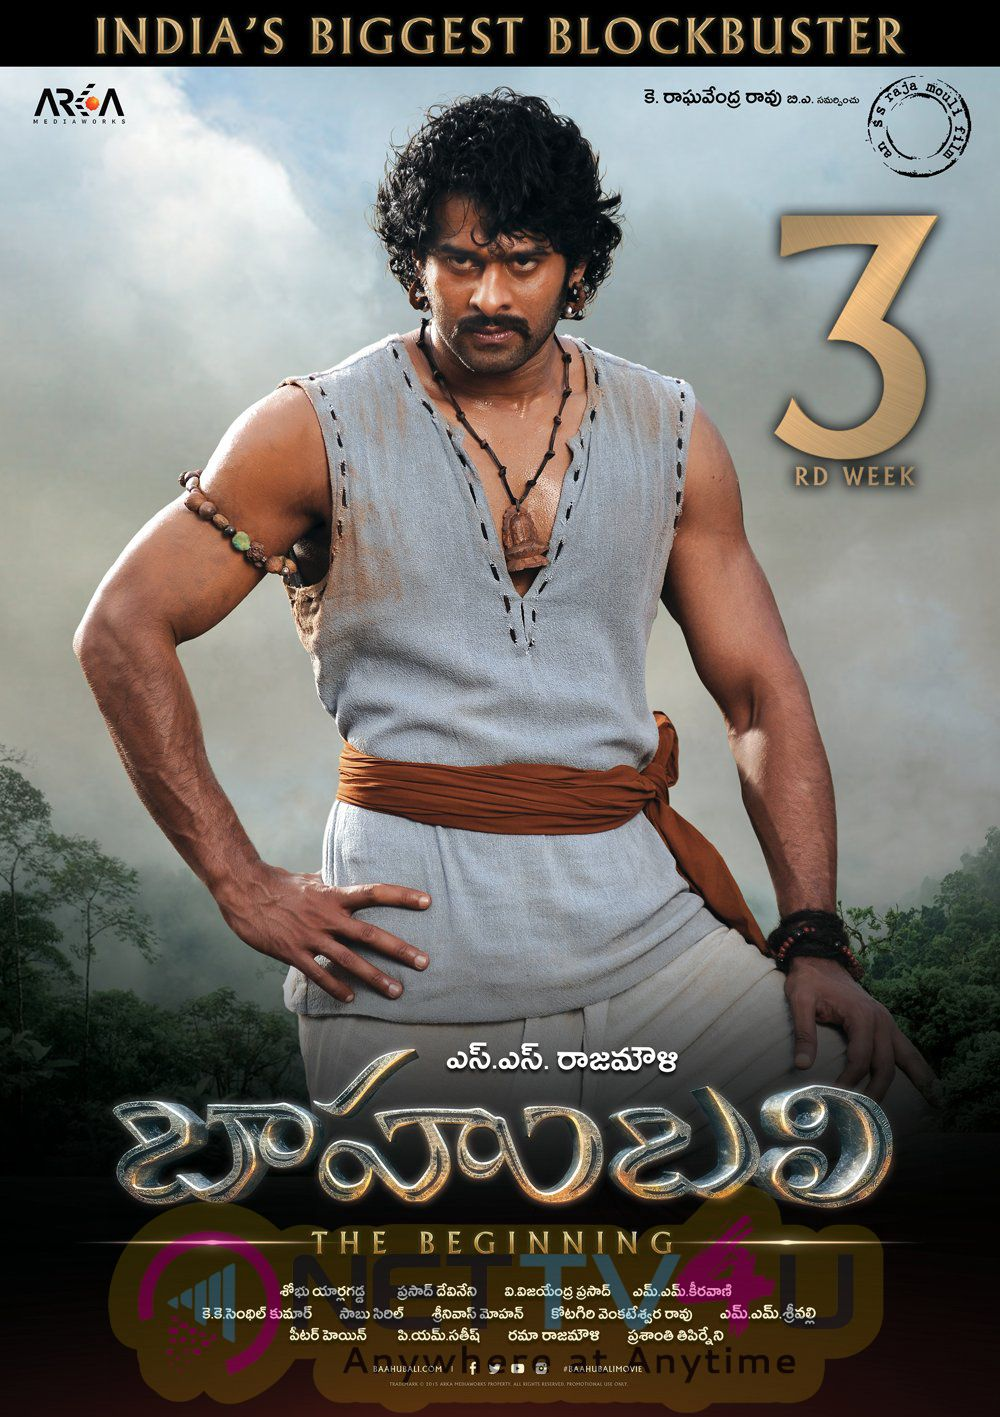 Wallpapers And Posters For Baahubali Telugu Movie 30 - Bahubali 1 Movie Poster - HD Wallpaper